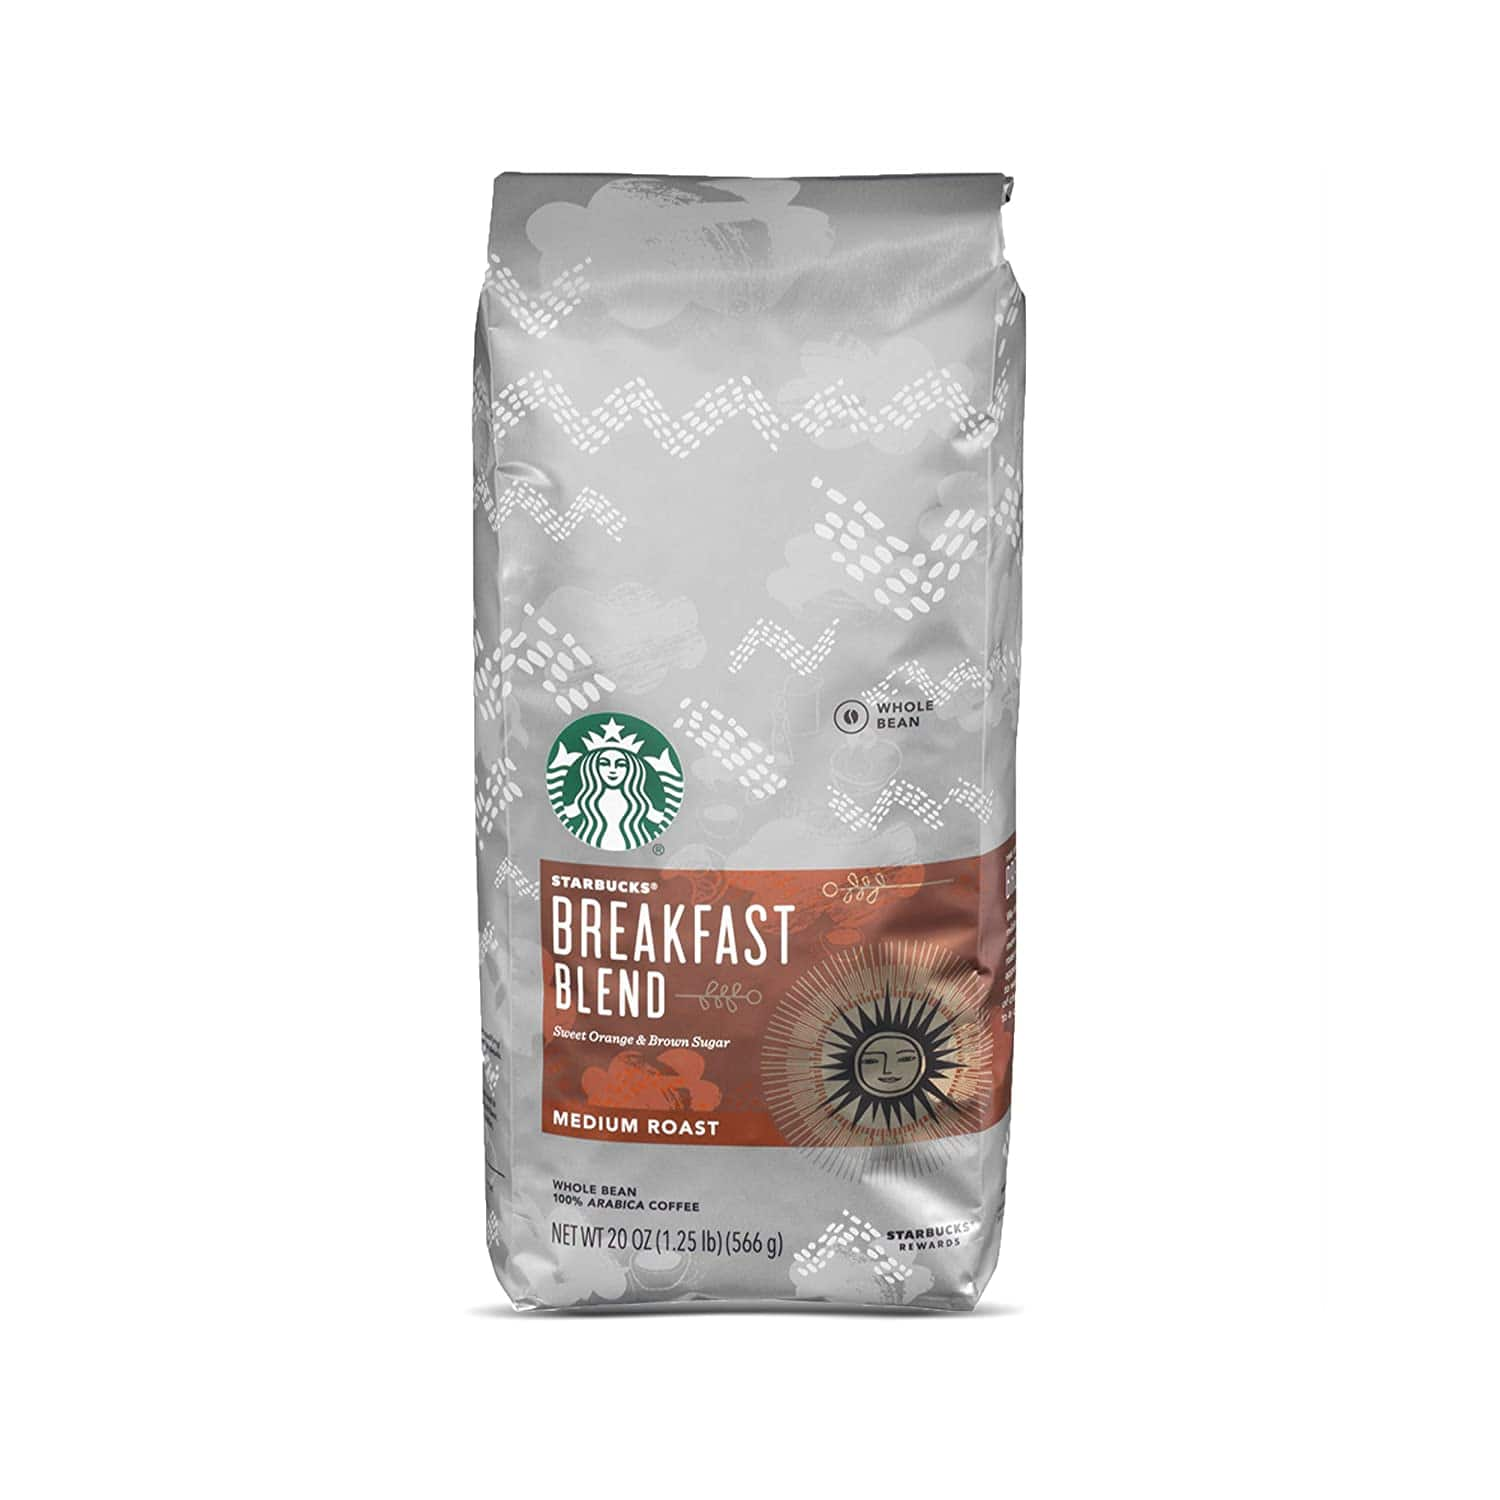 Amazon: Starbucks Breakfast Blend Medium Roast Whole Bean Coffee, 20 Ounce (Pack of 1) $5.00 + FREE Shipping on orders over $25